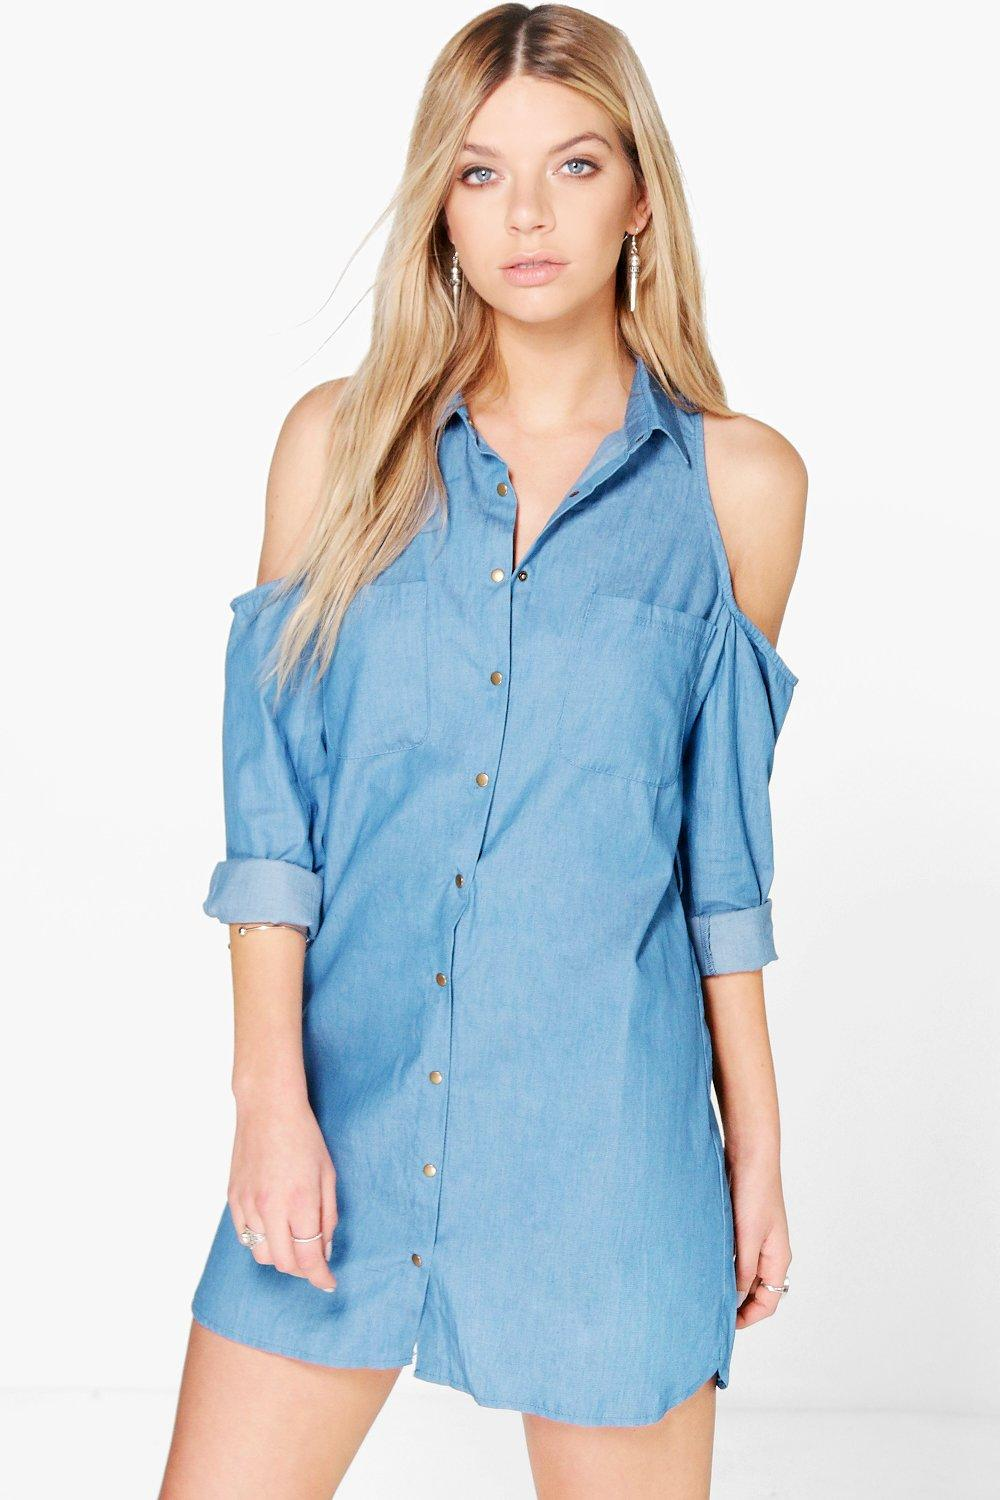 Excellent Womens Casual Flared Button Down Chambray Denim Shirt Dress CLEARANCE